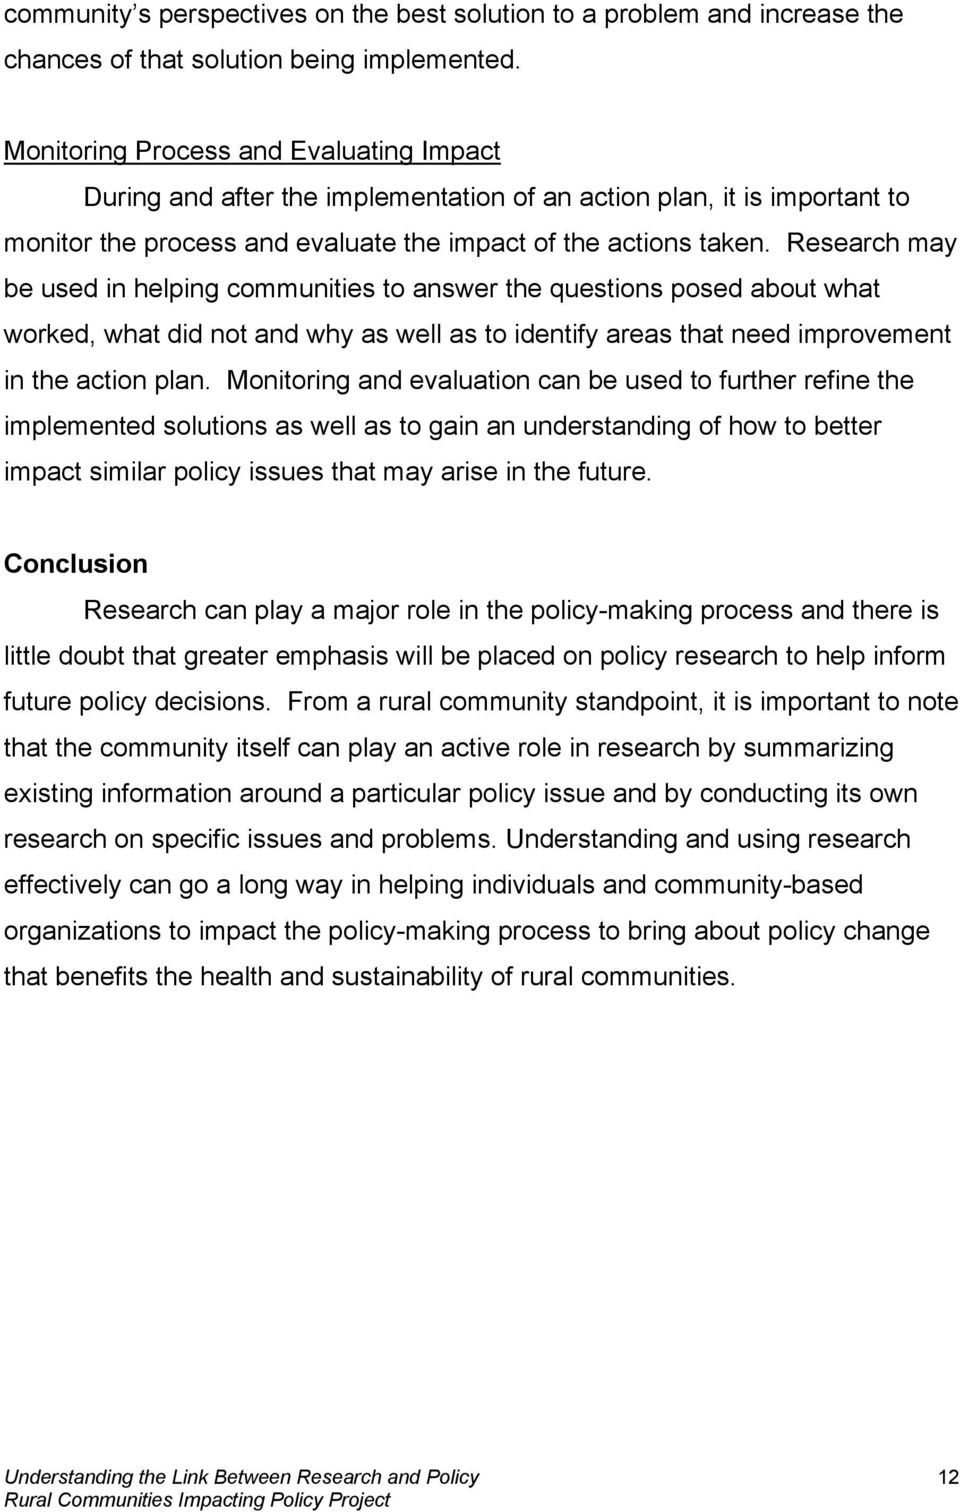 Research may be used in helping communities to answer the questions posed about what worked, what did not and why as well as to identify areas that need improvement in the action plan.